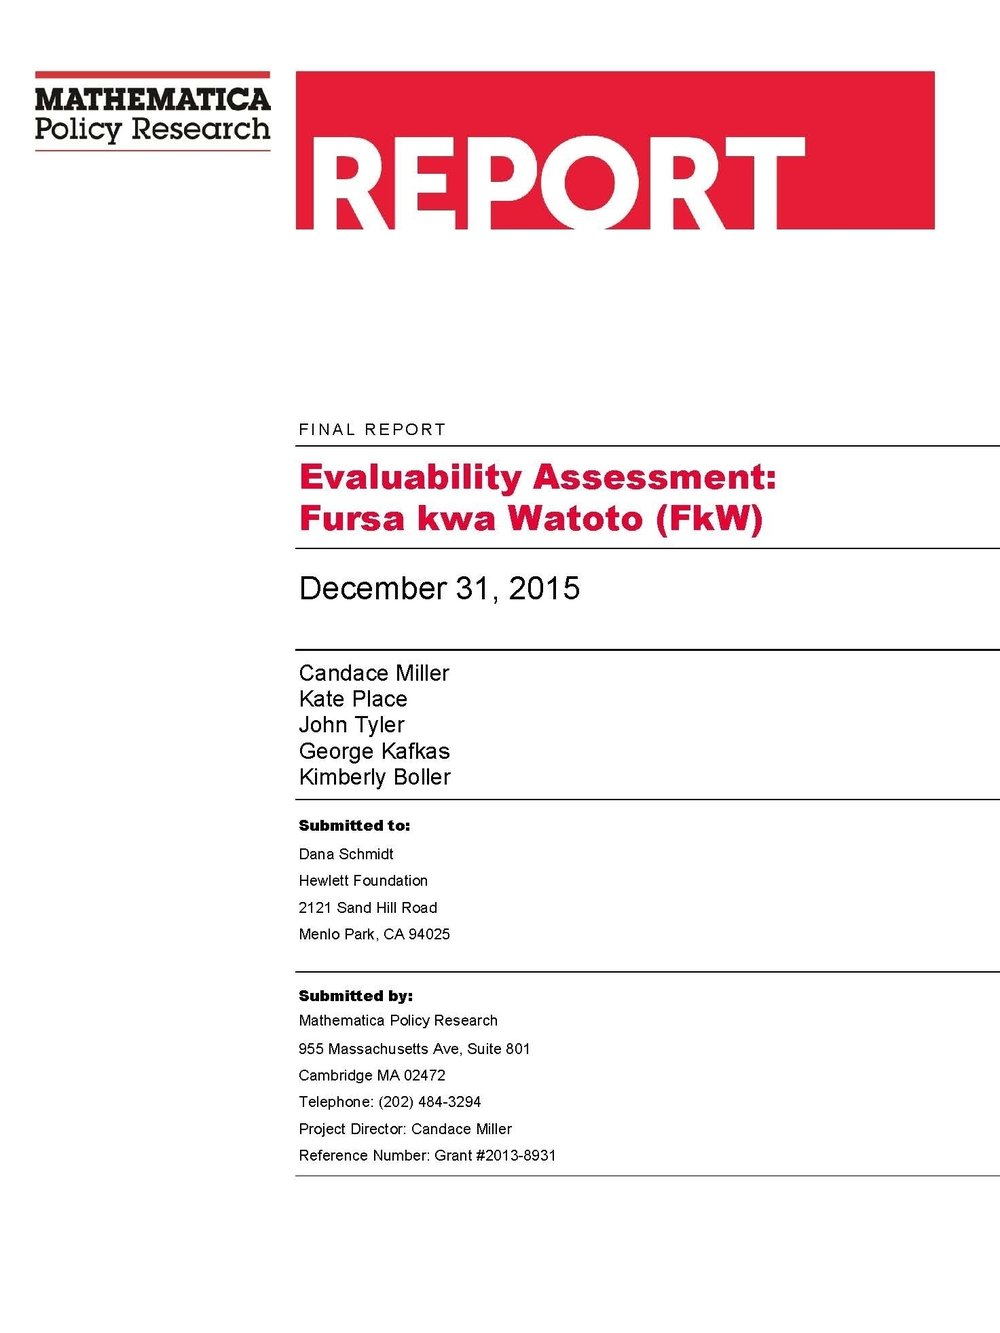 Evaluability Assessment Report - Combined